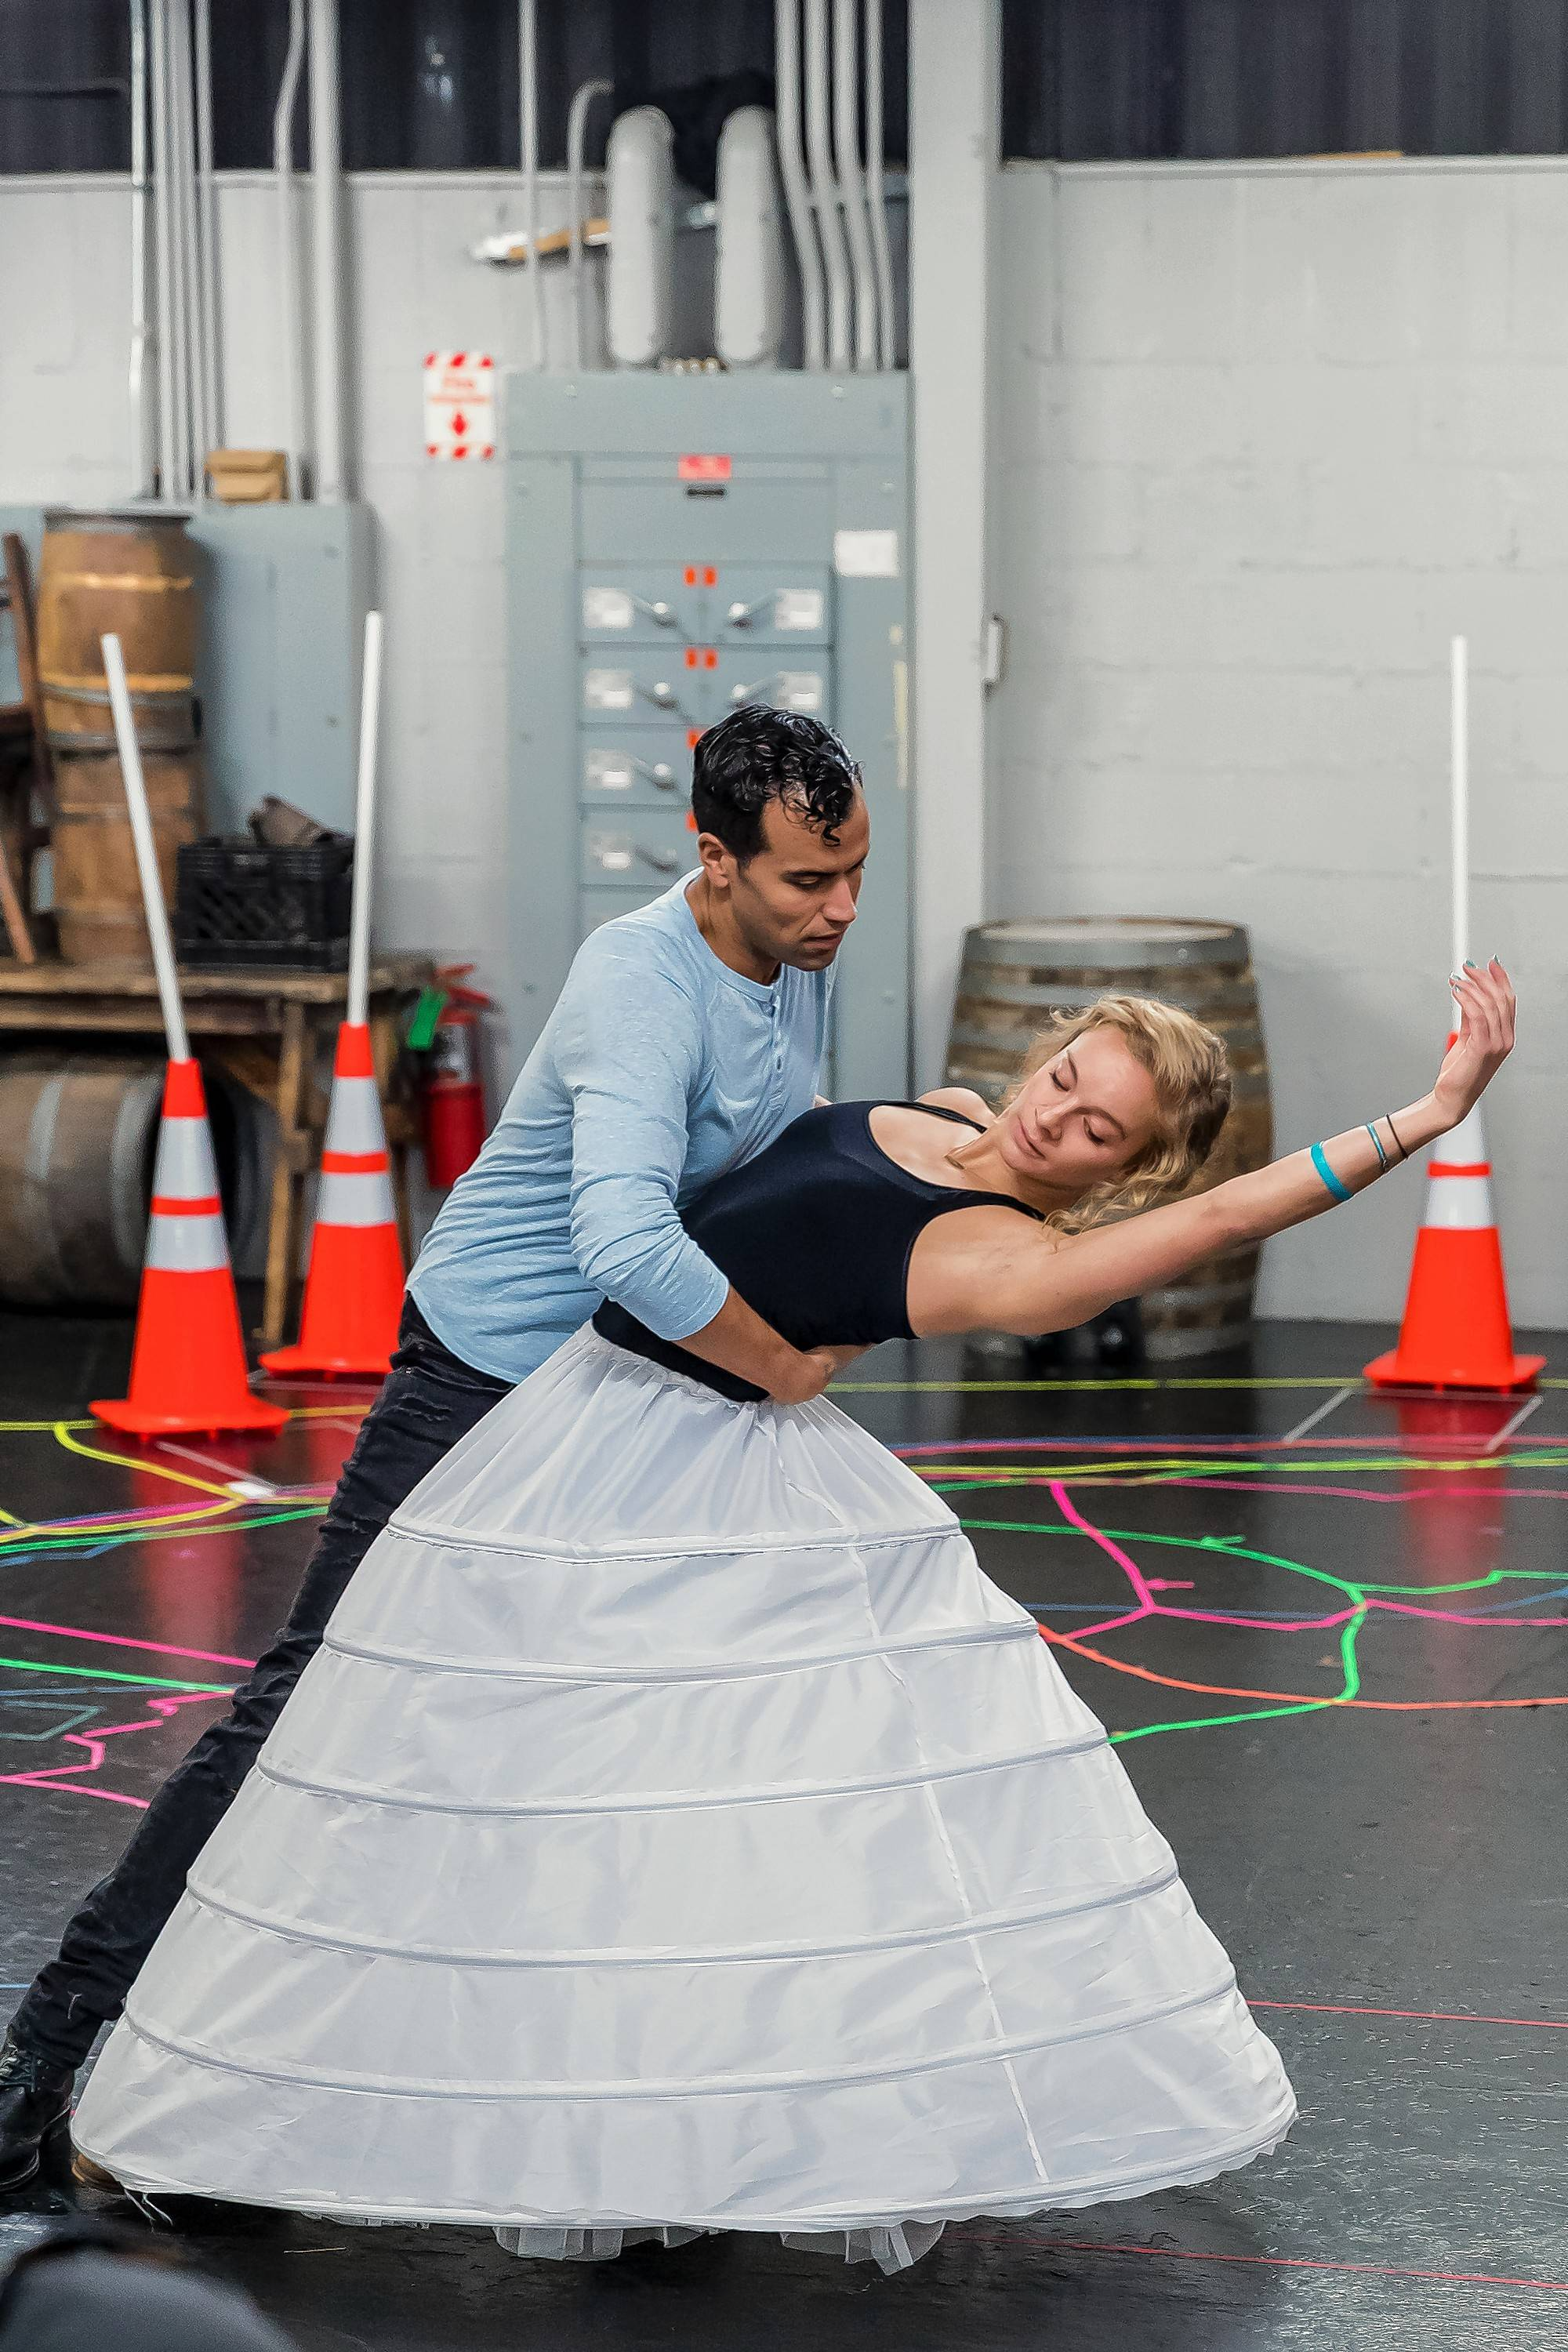 """Brandon Contreras and Glen Ellyn native Erica Stephan rehearse the title song of """"Disney's Beauty and the Beast"""" at Drury Lane Theatre in Oakbrook Terrace."""